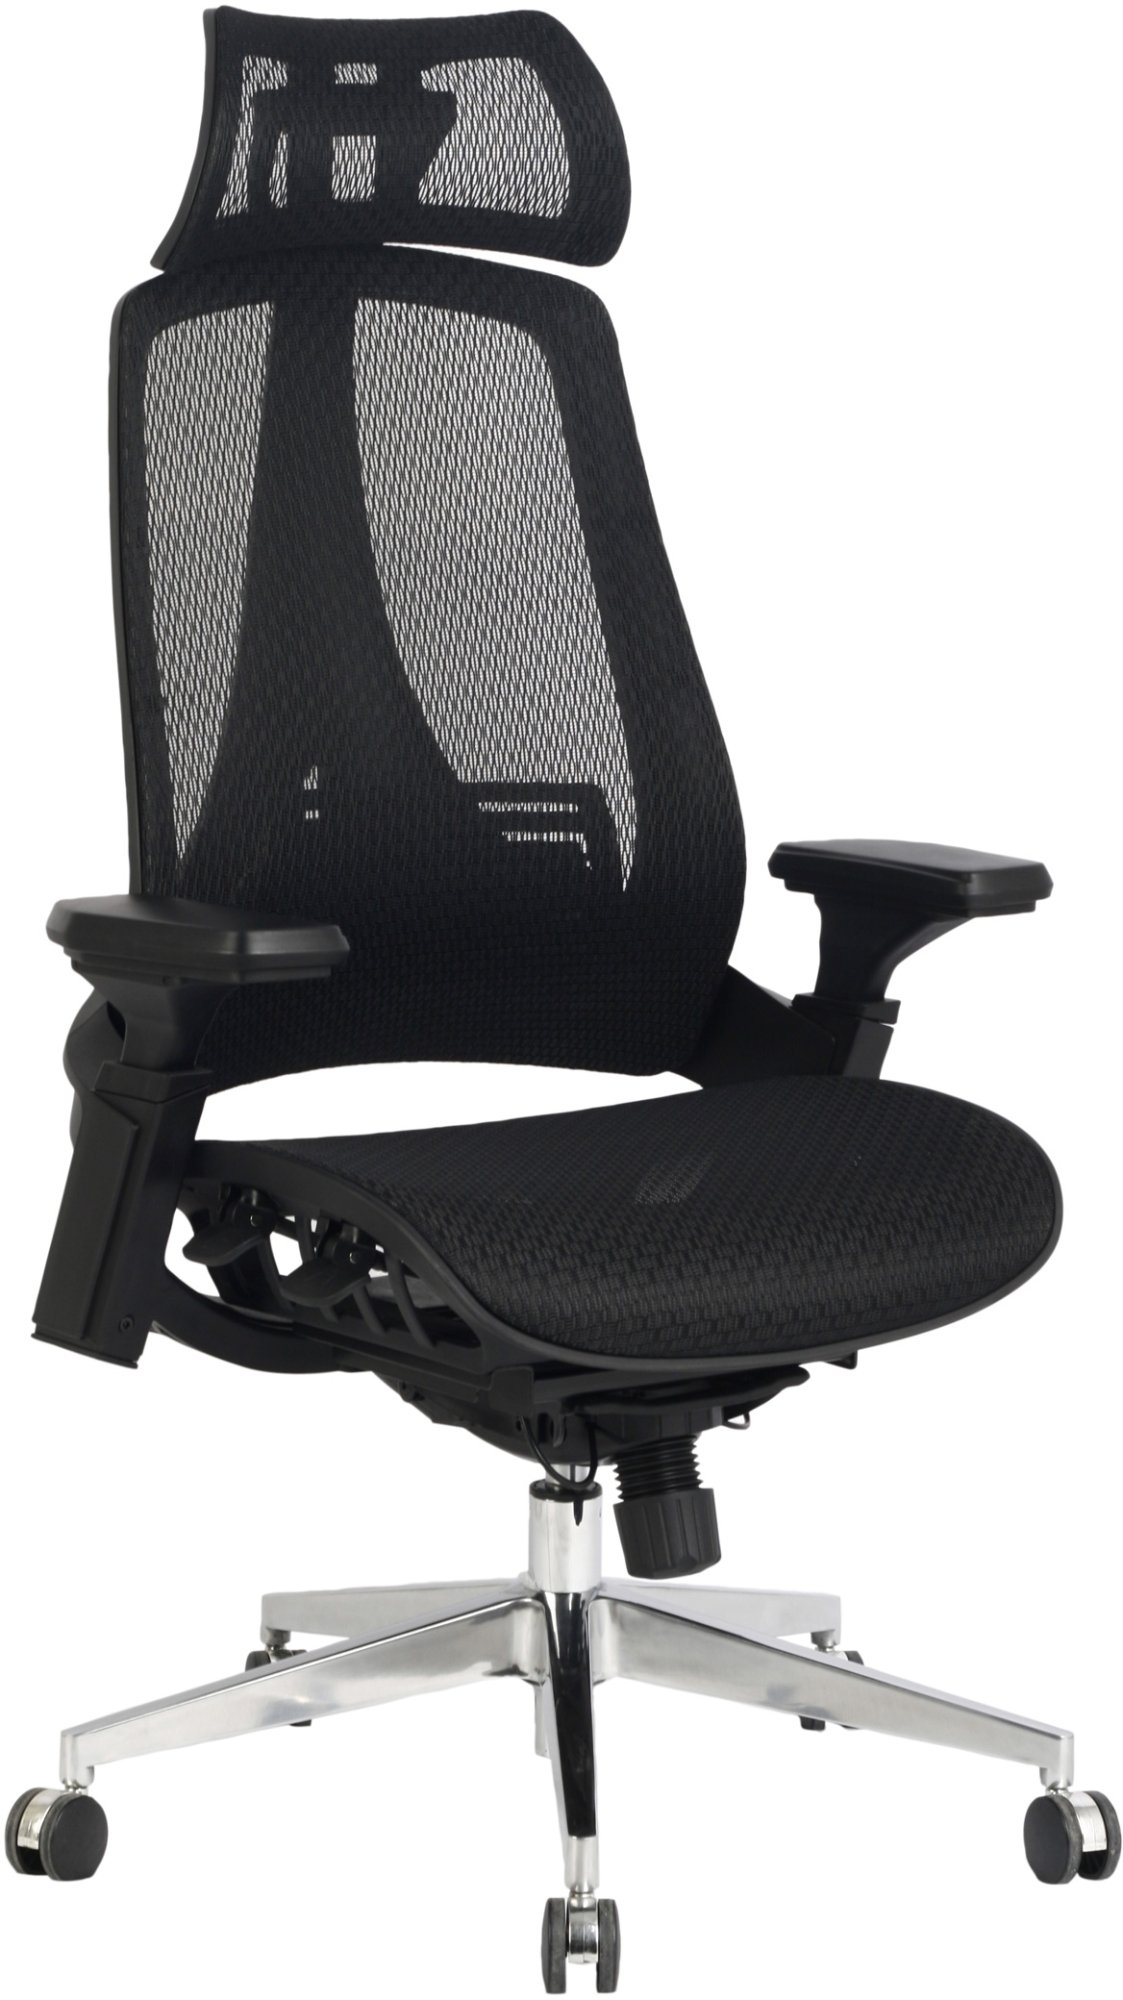 Back posture chair - Sorrento Mesh Back Posture Chair Please Note Images Are For Reference Only And May Not Exactly Reflect The Colour Or Finish Of Your Selected Product